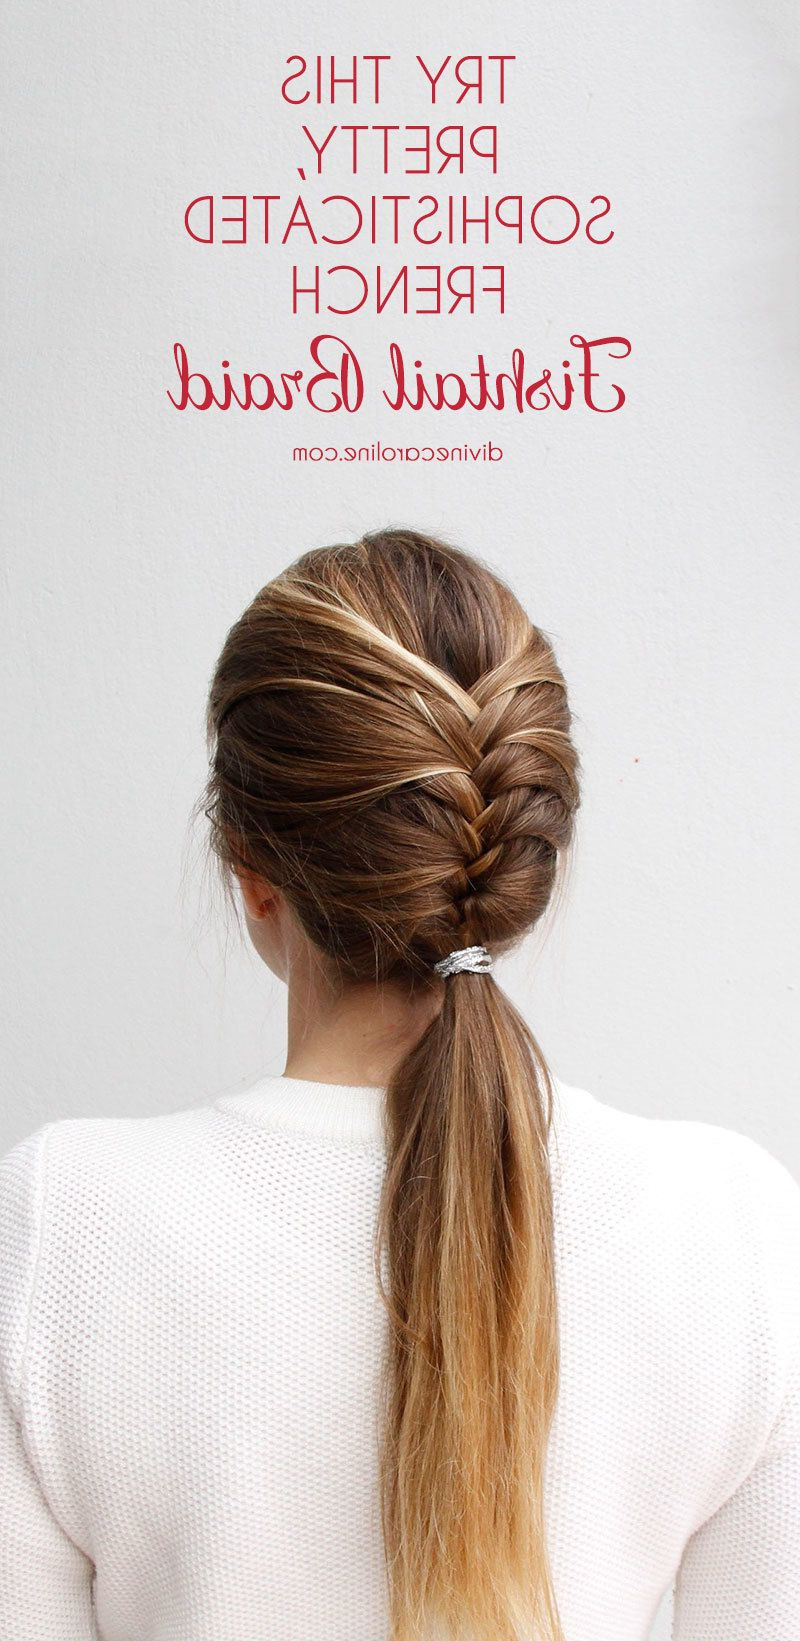 Try This Pretty, Sophisticated French Fishtail Braid Pertaining To Well Known Fishtail Braid Pontyail Hairstyles (View 6 of 20)